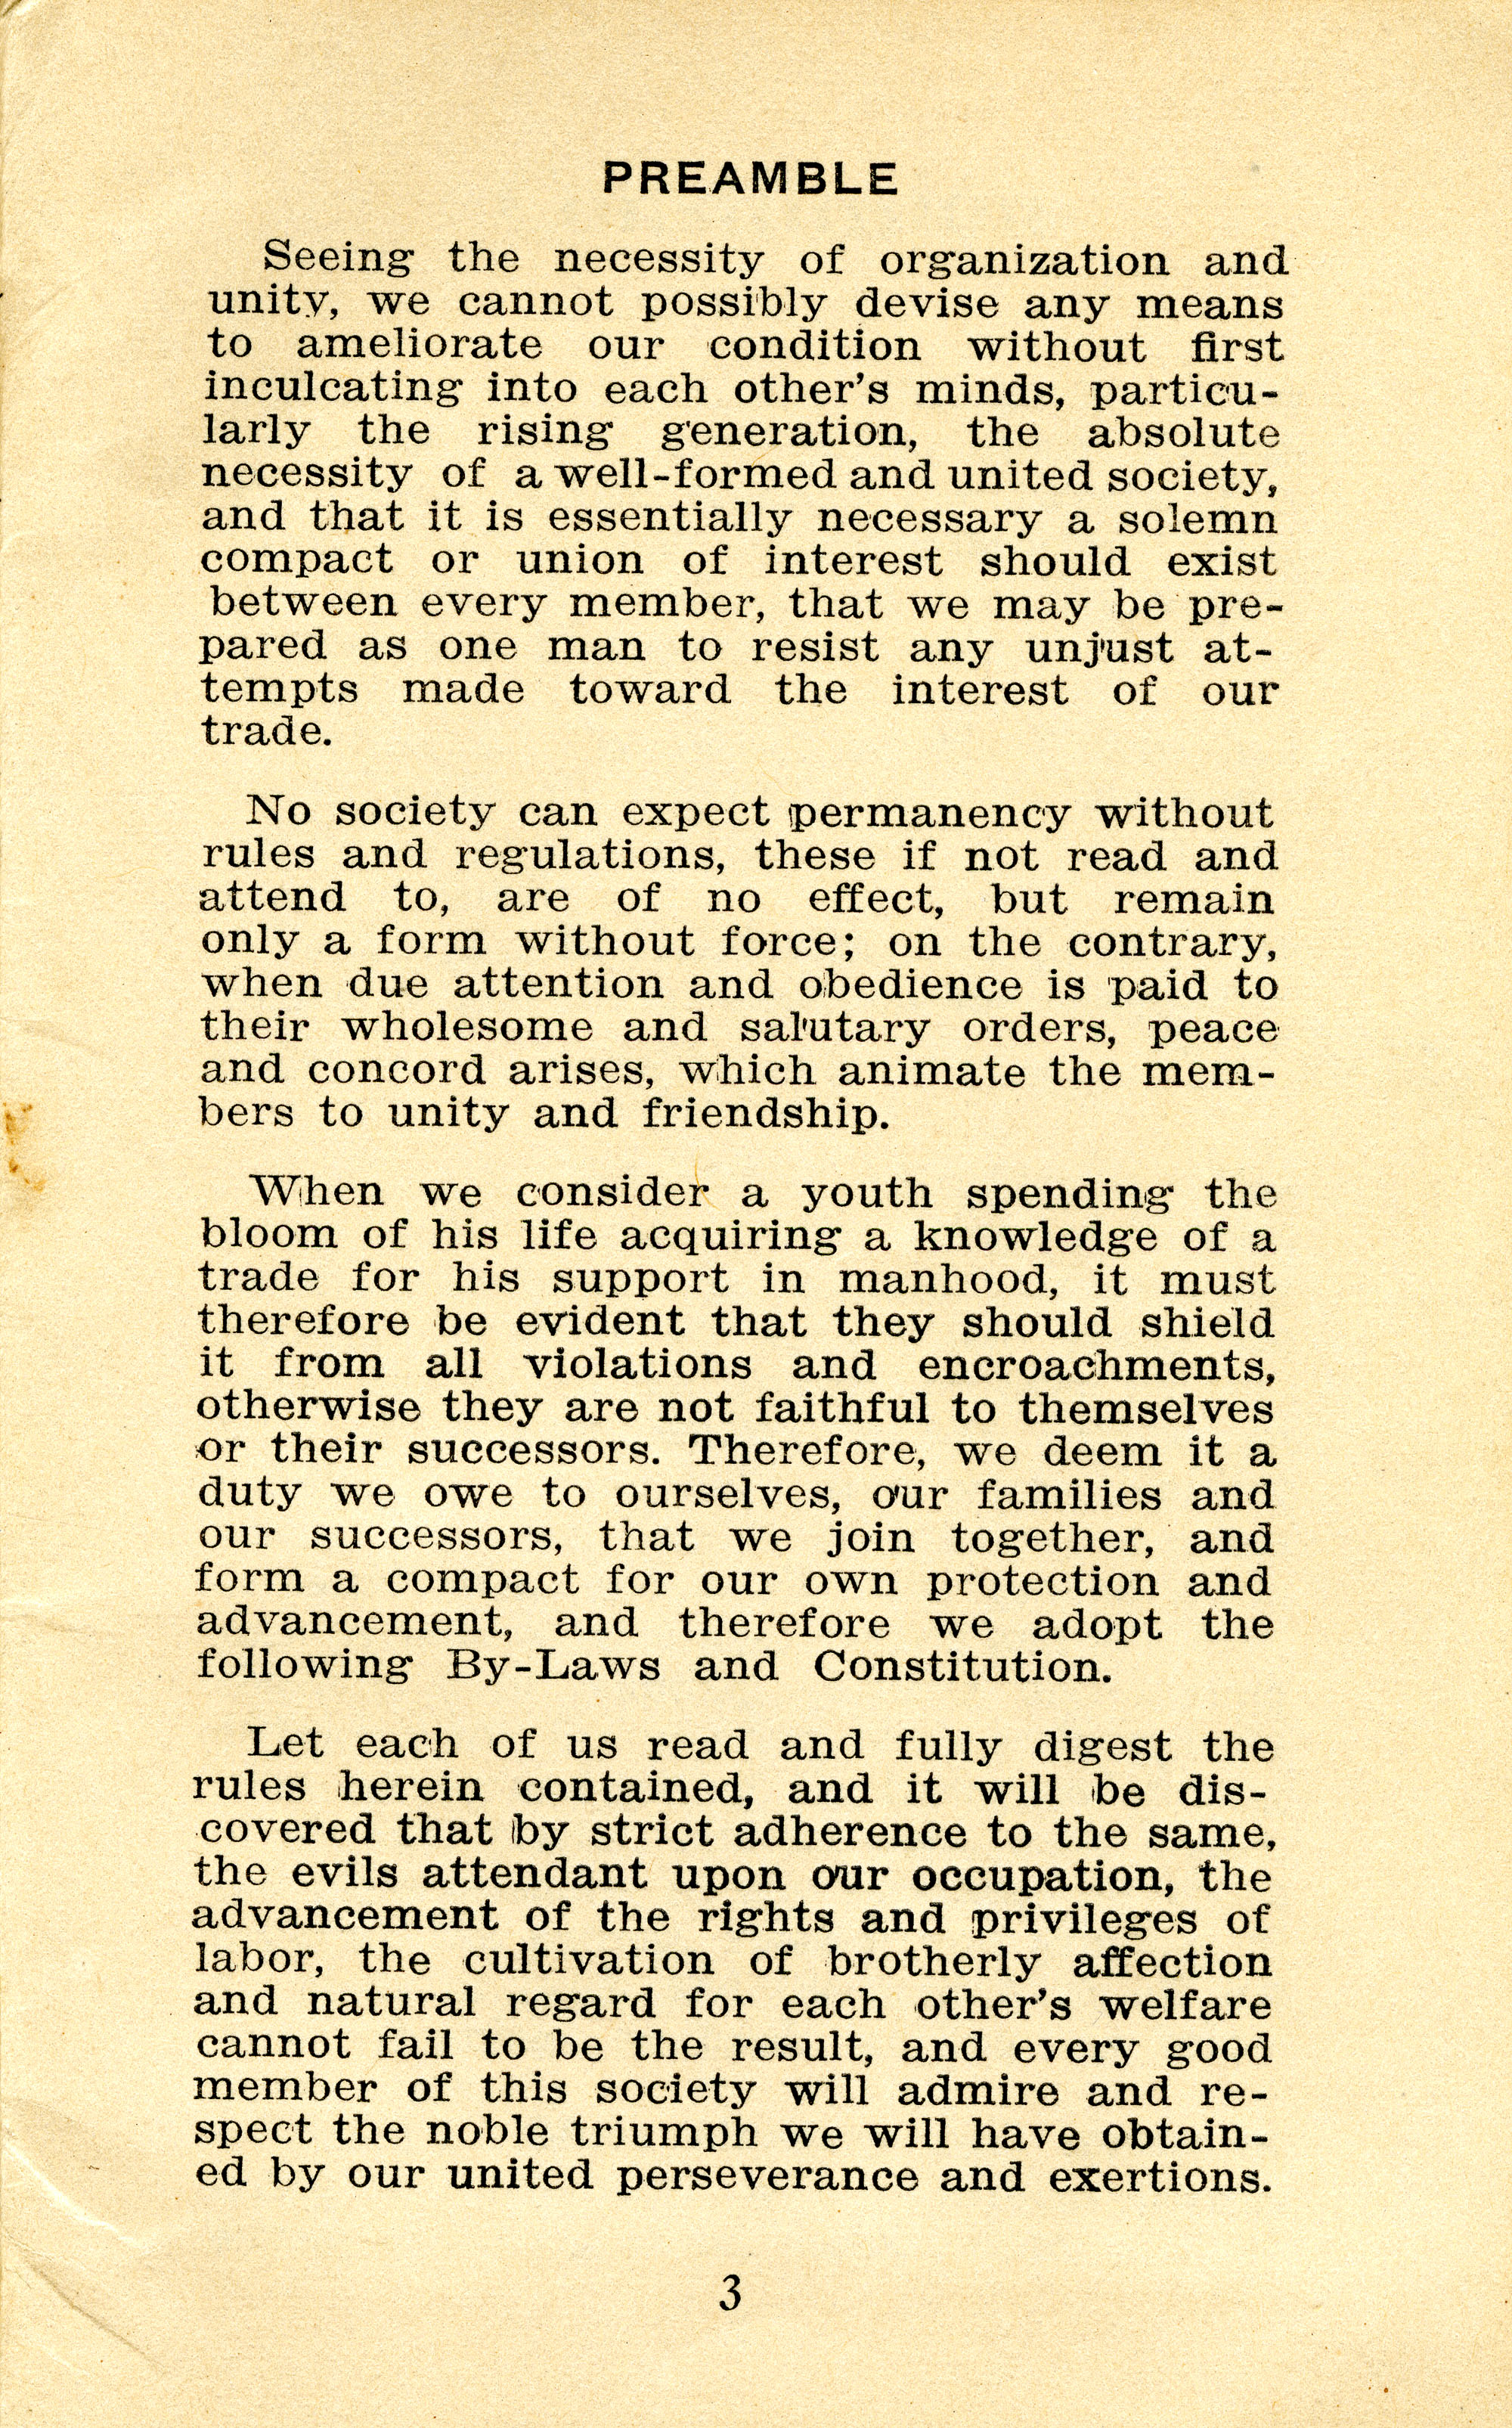 Constitution, by-laws, working code and rules of order, Page 2